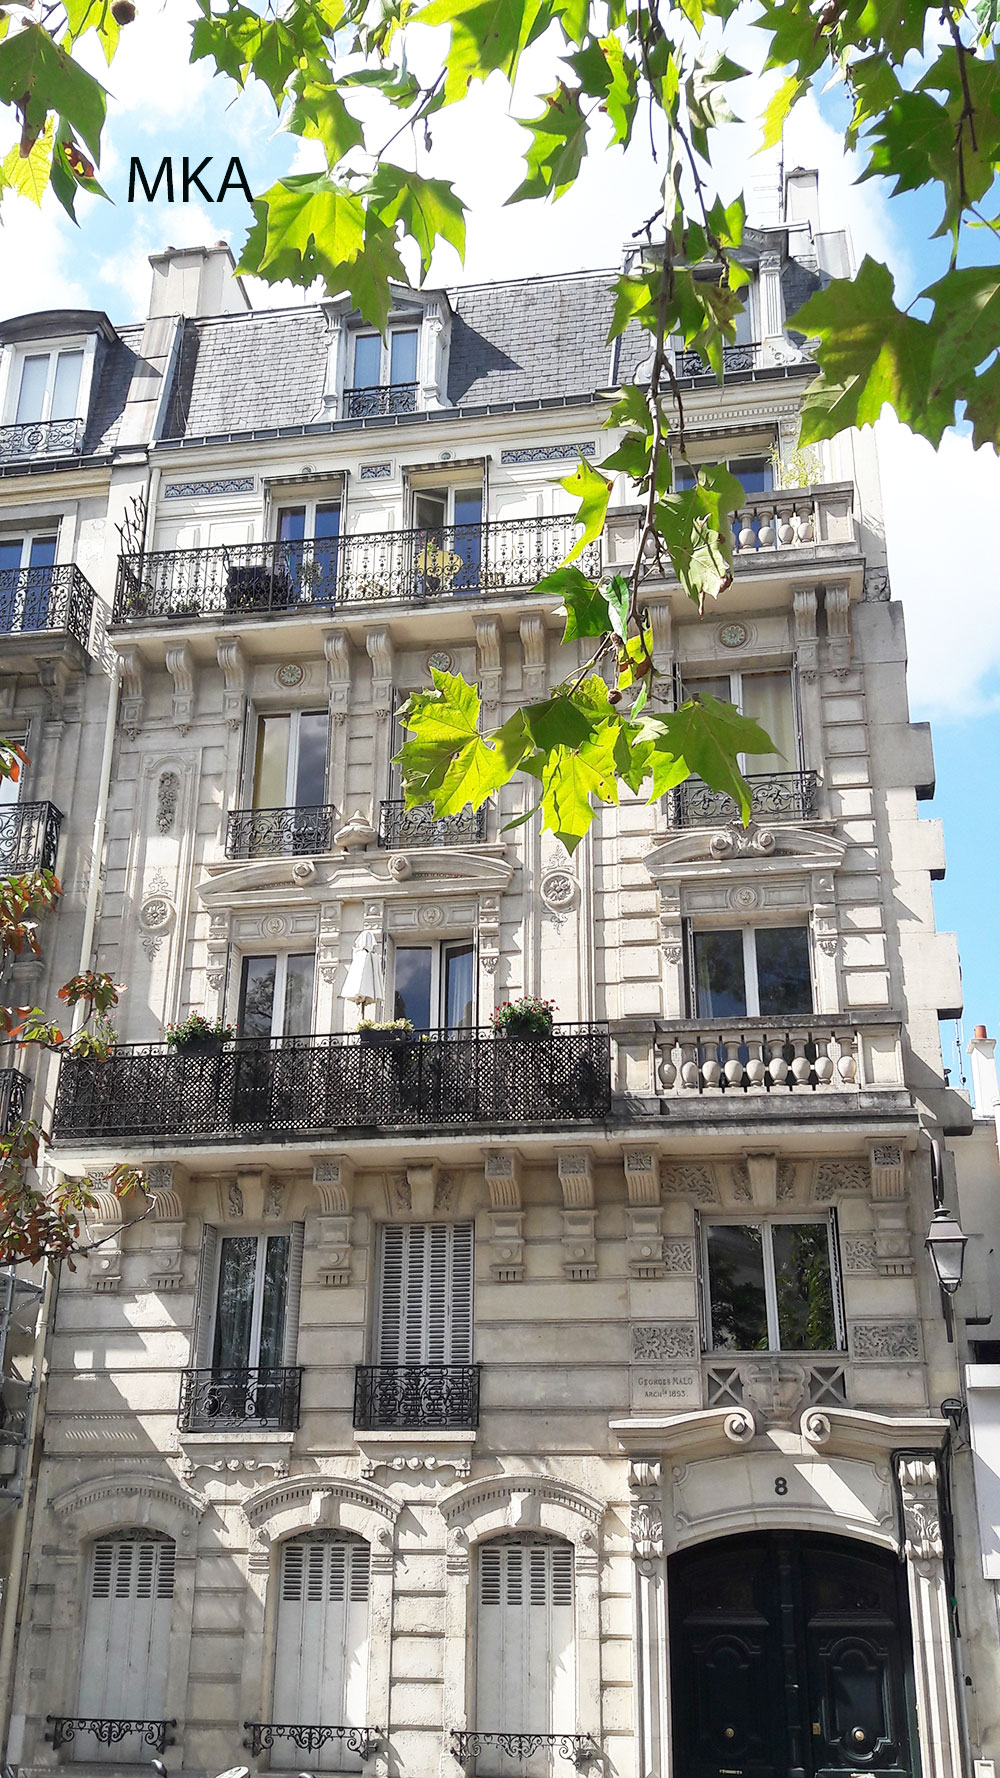 https://www.mka.lu/?listing=appartement-de-luxe-a-vendre-a-paris-vincennes